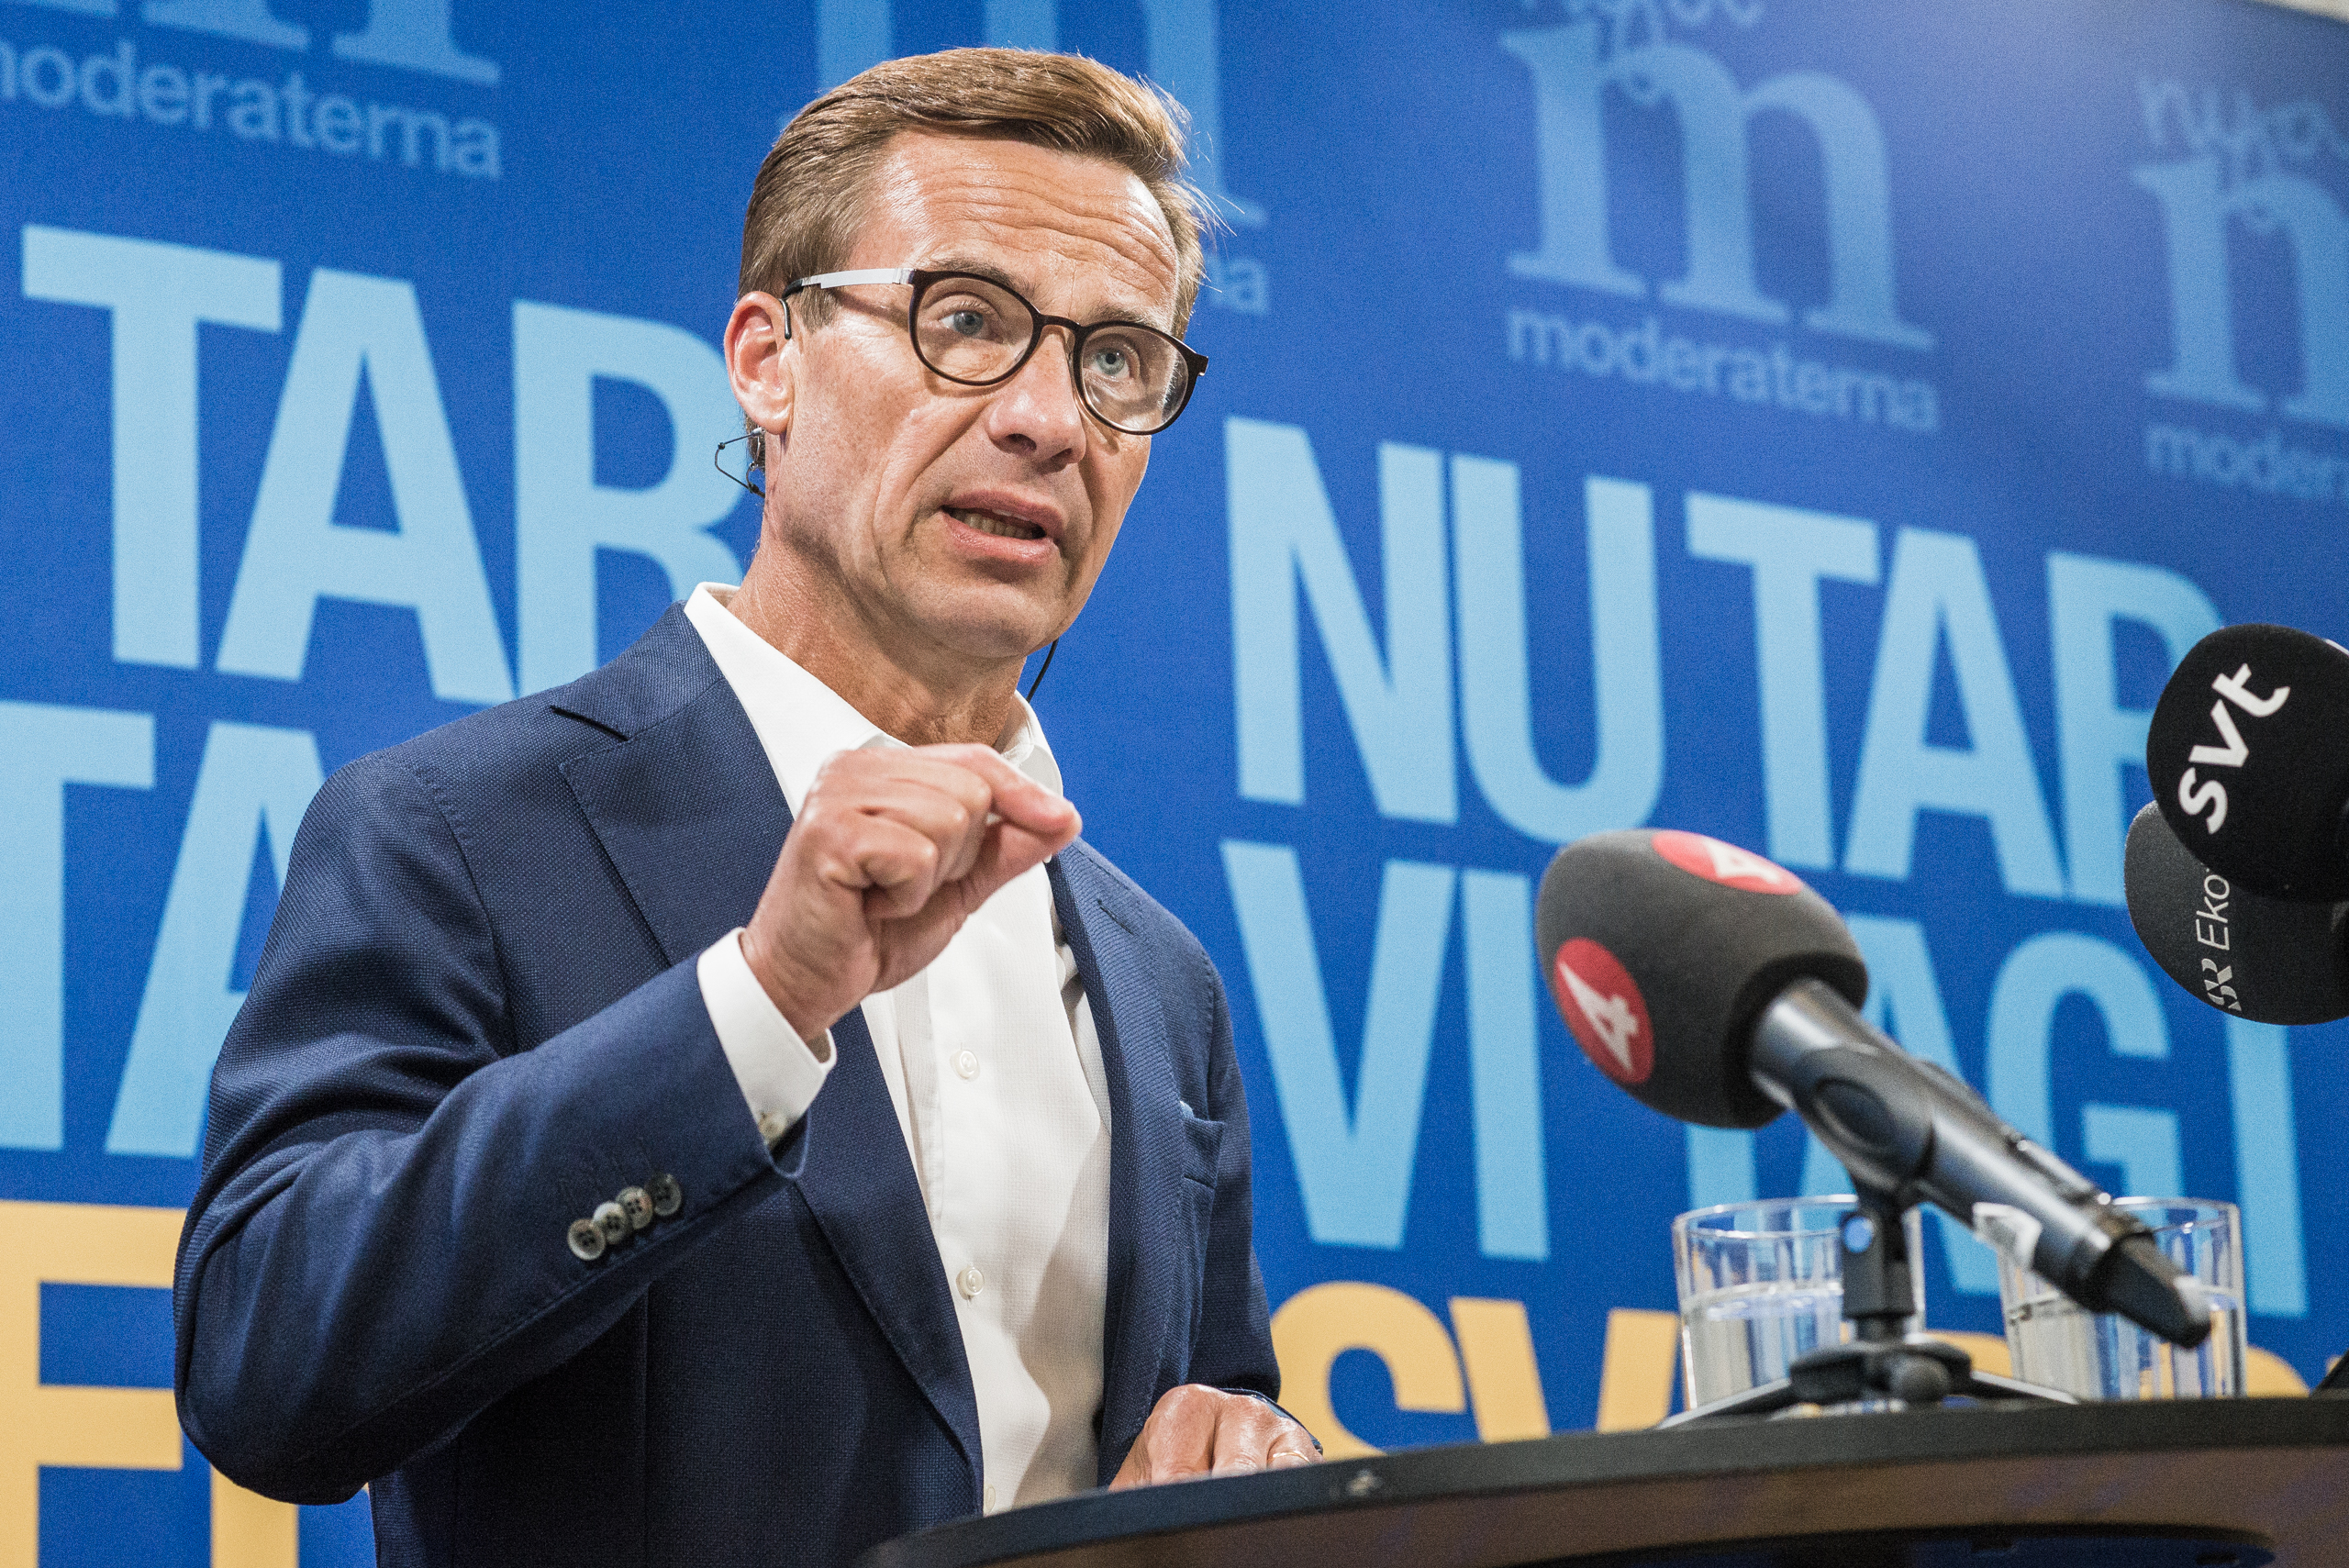 Ulf Kristersson, FOTO: Axel Adolfsson